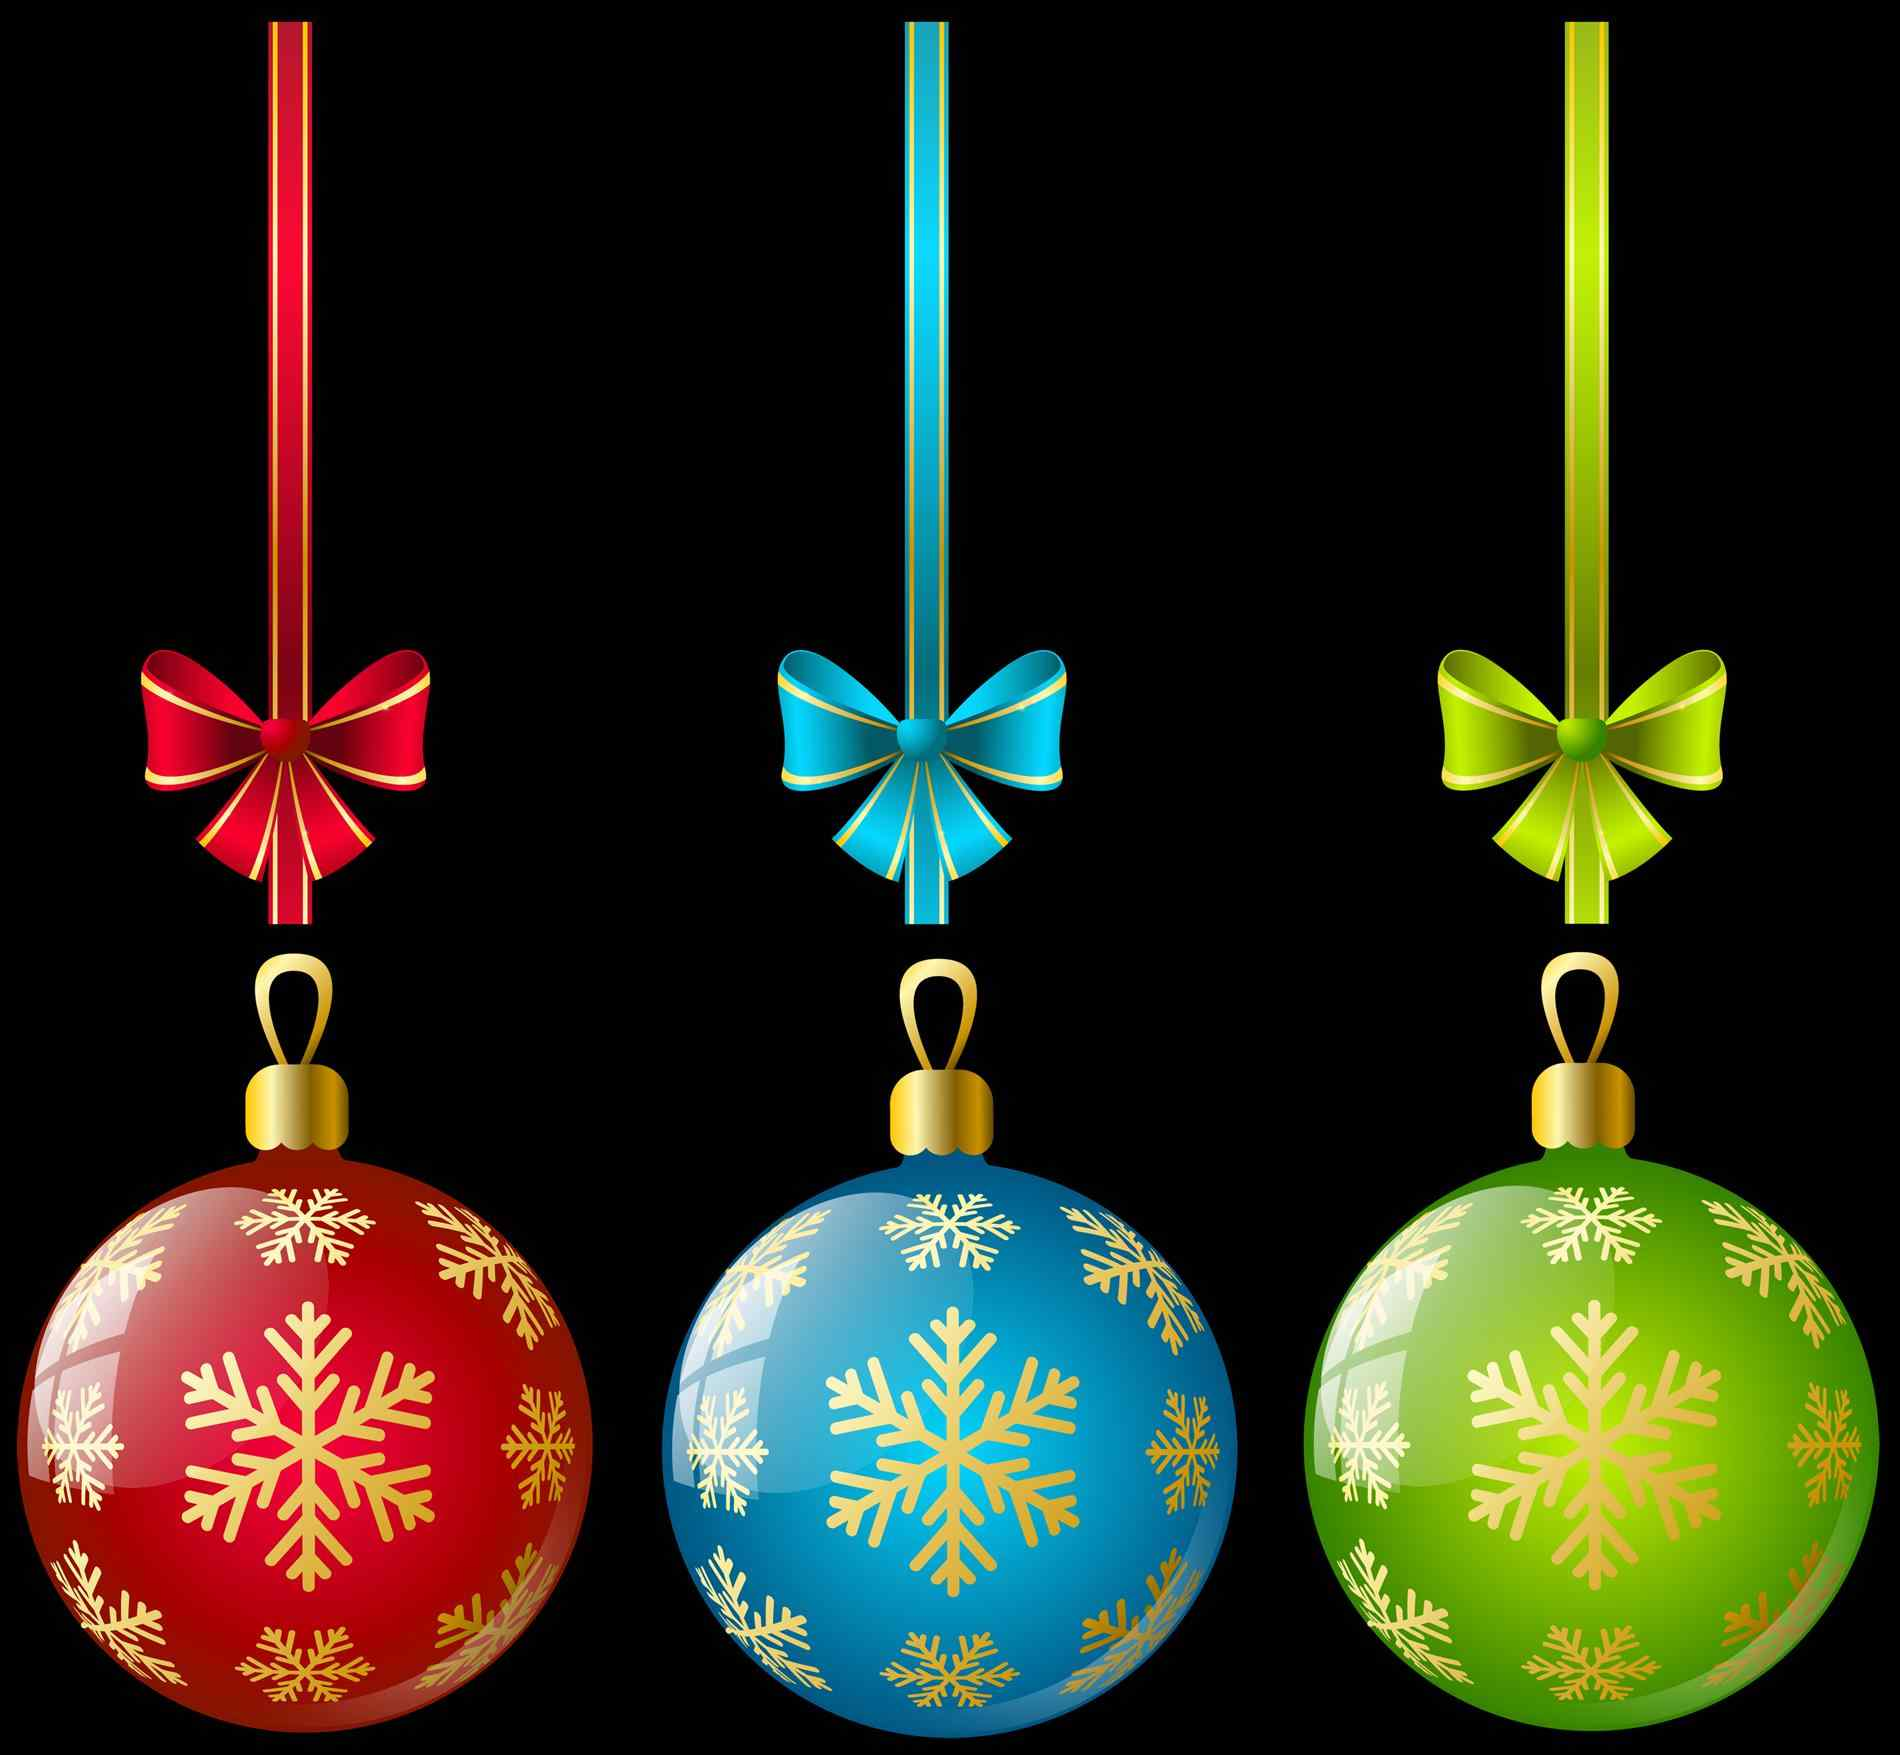 1900x1755 Christmas Decorations Clipart Images Meublessous.website